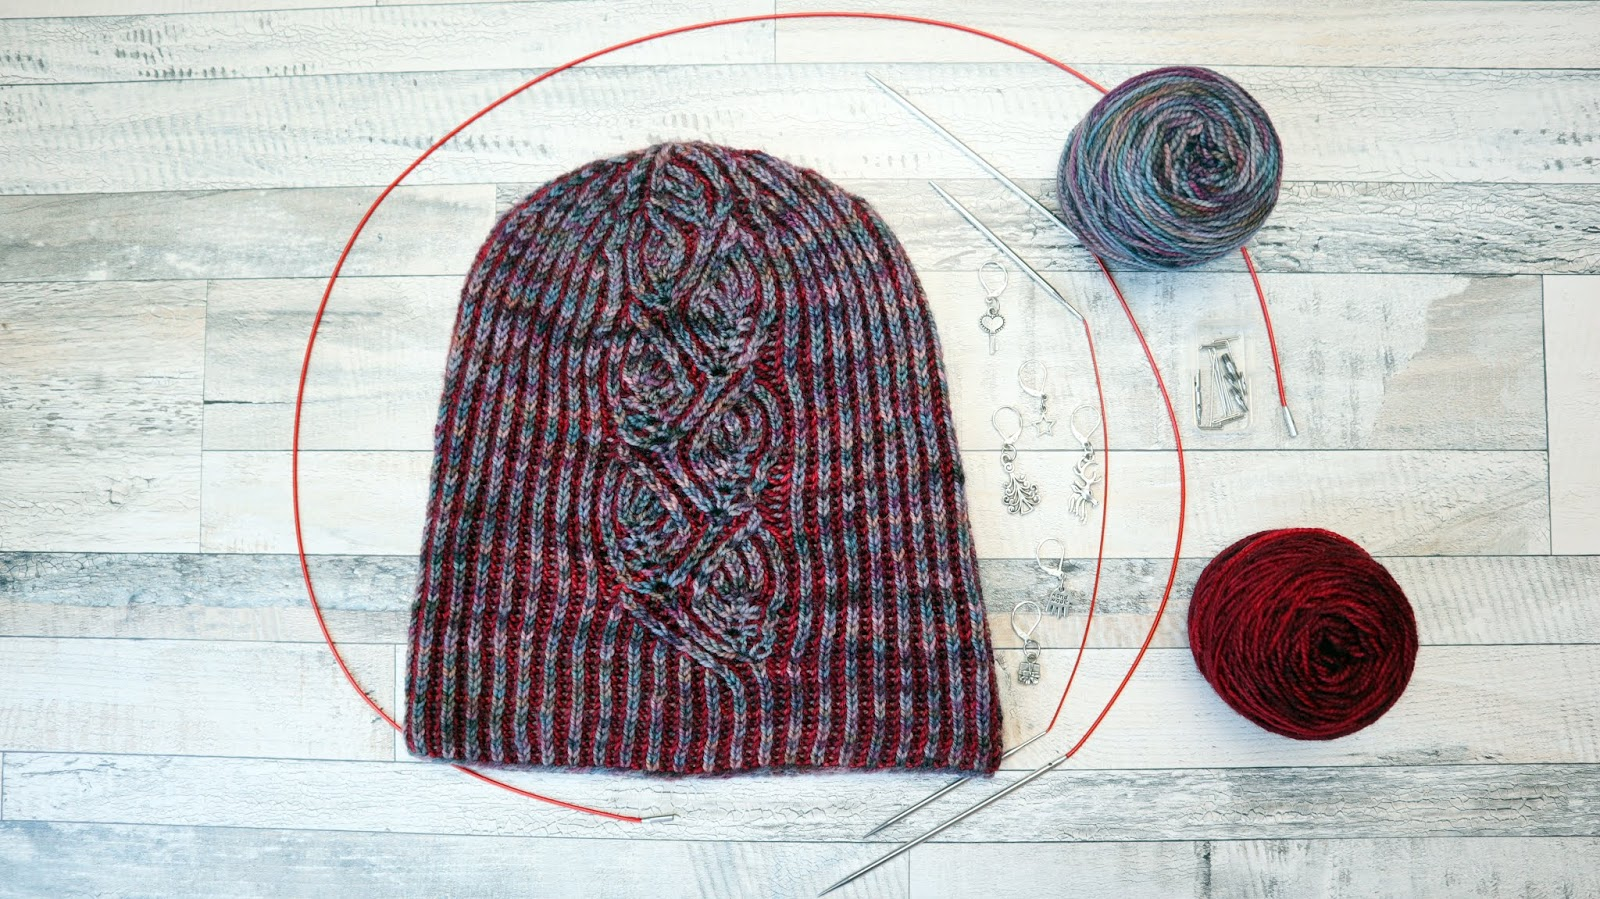 Foliage Hat - Brioche Knitting